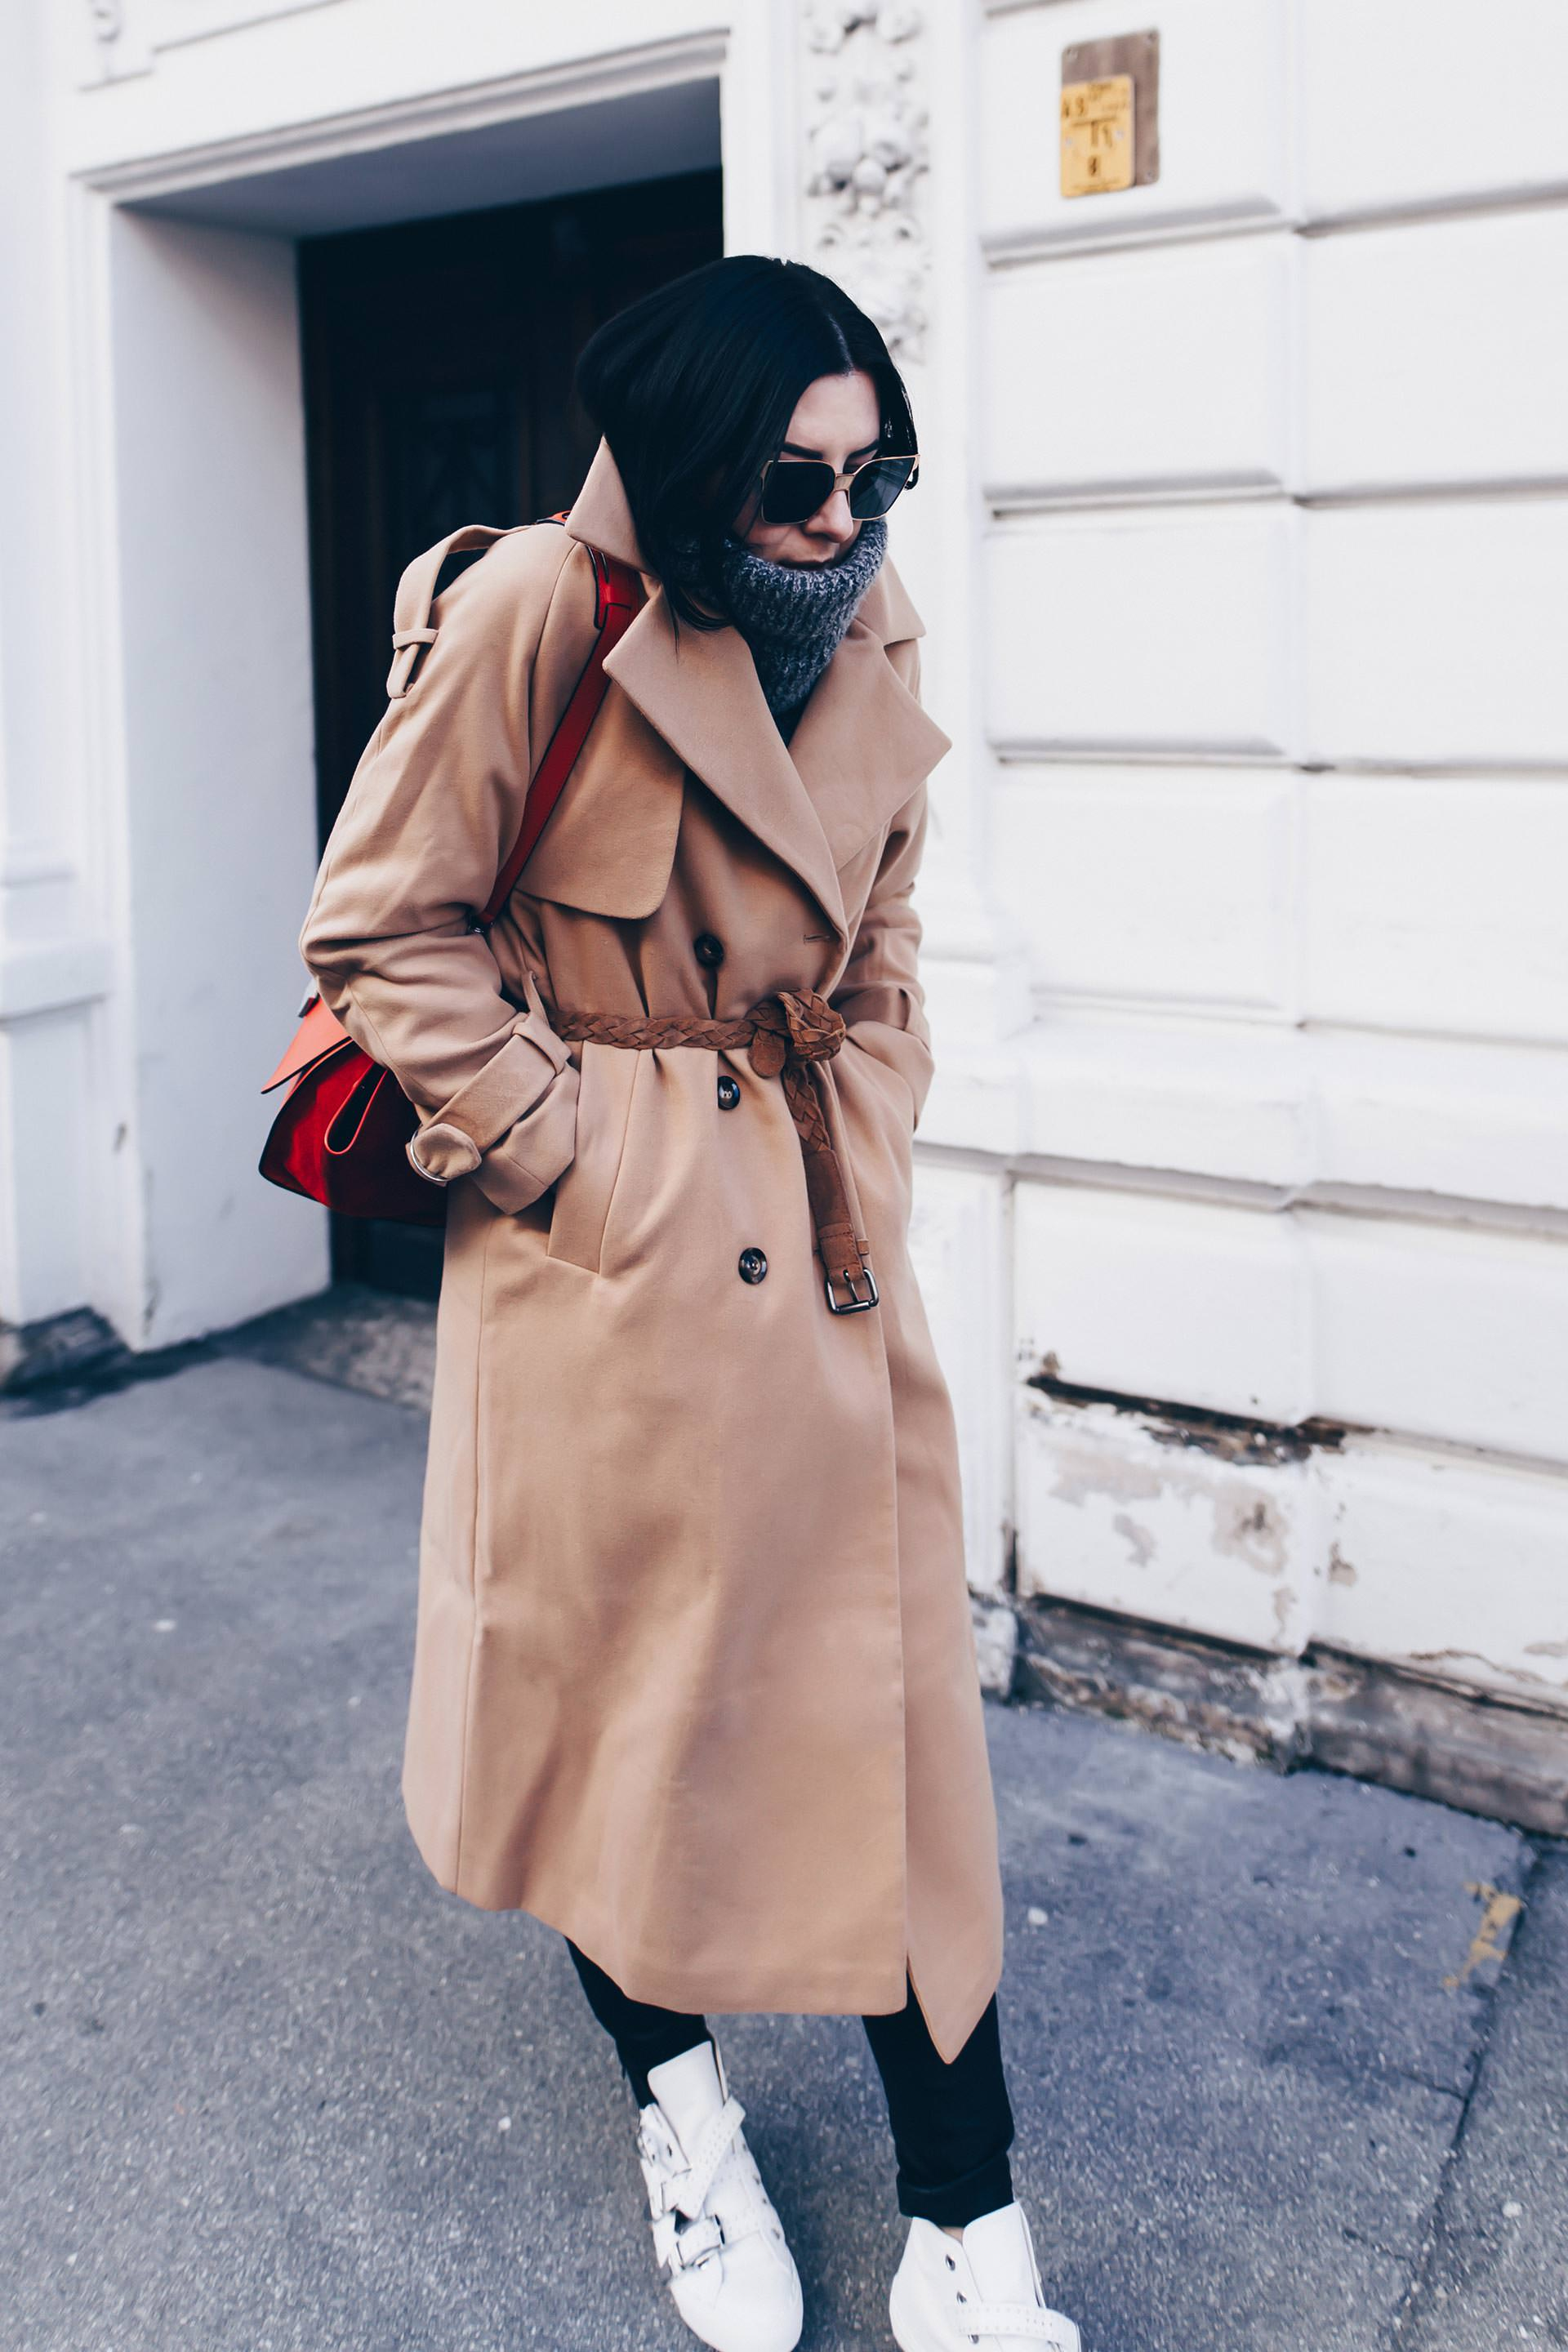 der perfekte Trenchcoat für den Winter, weiße Sneakers kombinieren, schwarze Lederhose, Chloé Sneakers, Celine Trapeze Bag, Basic Chic Outfit, Winter Outfit mit Trenchcoat, Modeblog, Fashion Blog, www.whoismocca.com